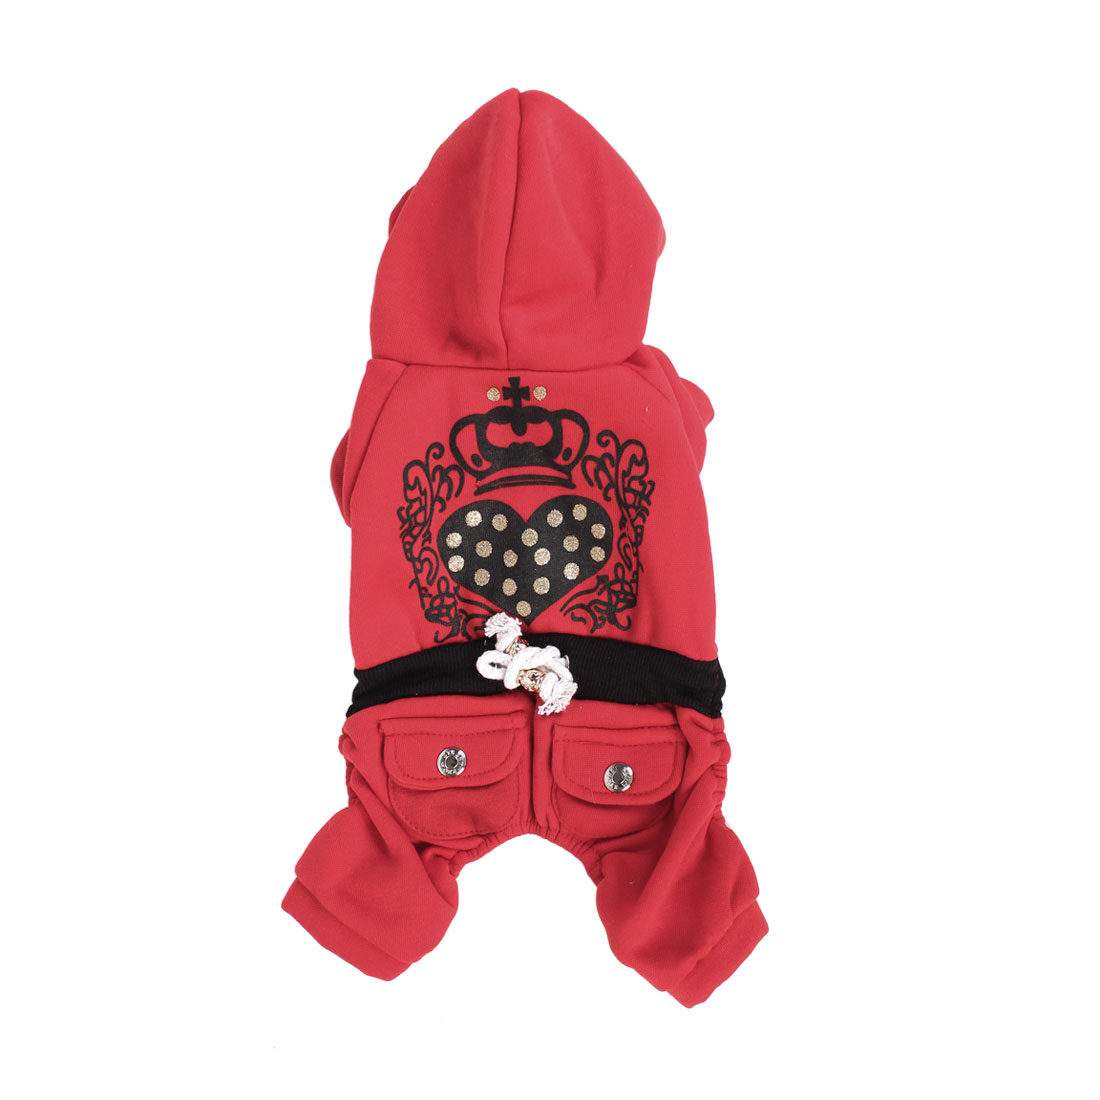 Winter Warm Sleeved Hoodie Pet Dog Poodle Apparel Coat Clothes Red Black Size L